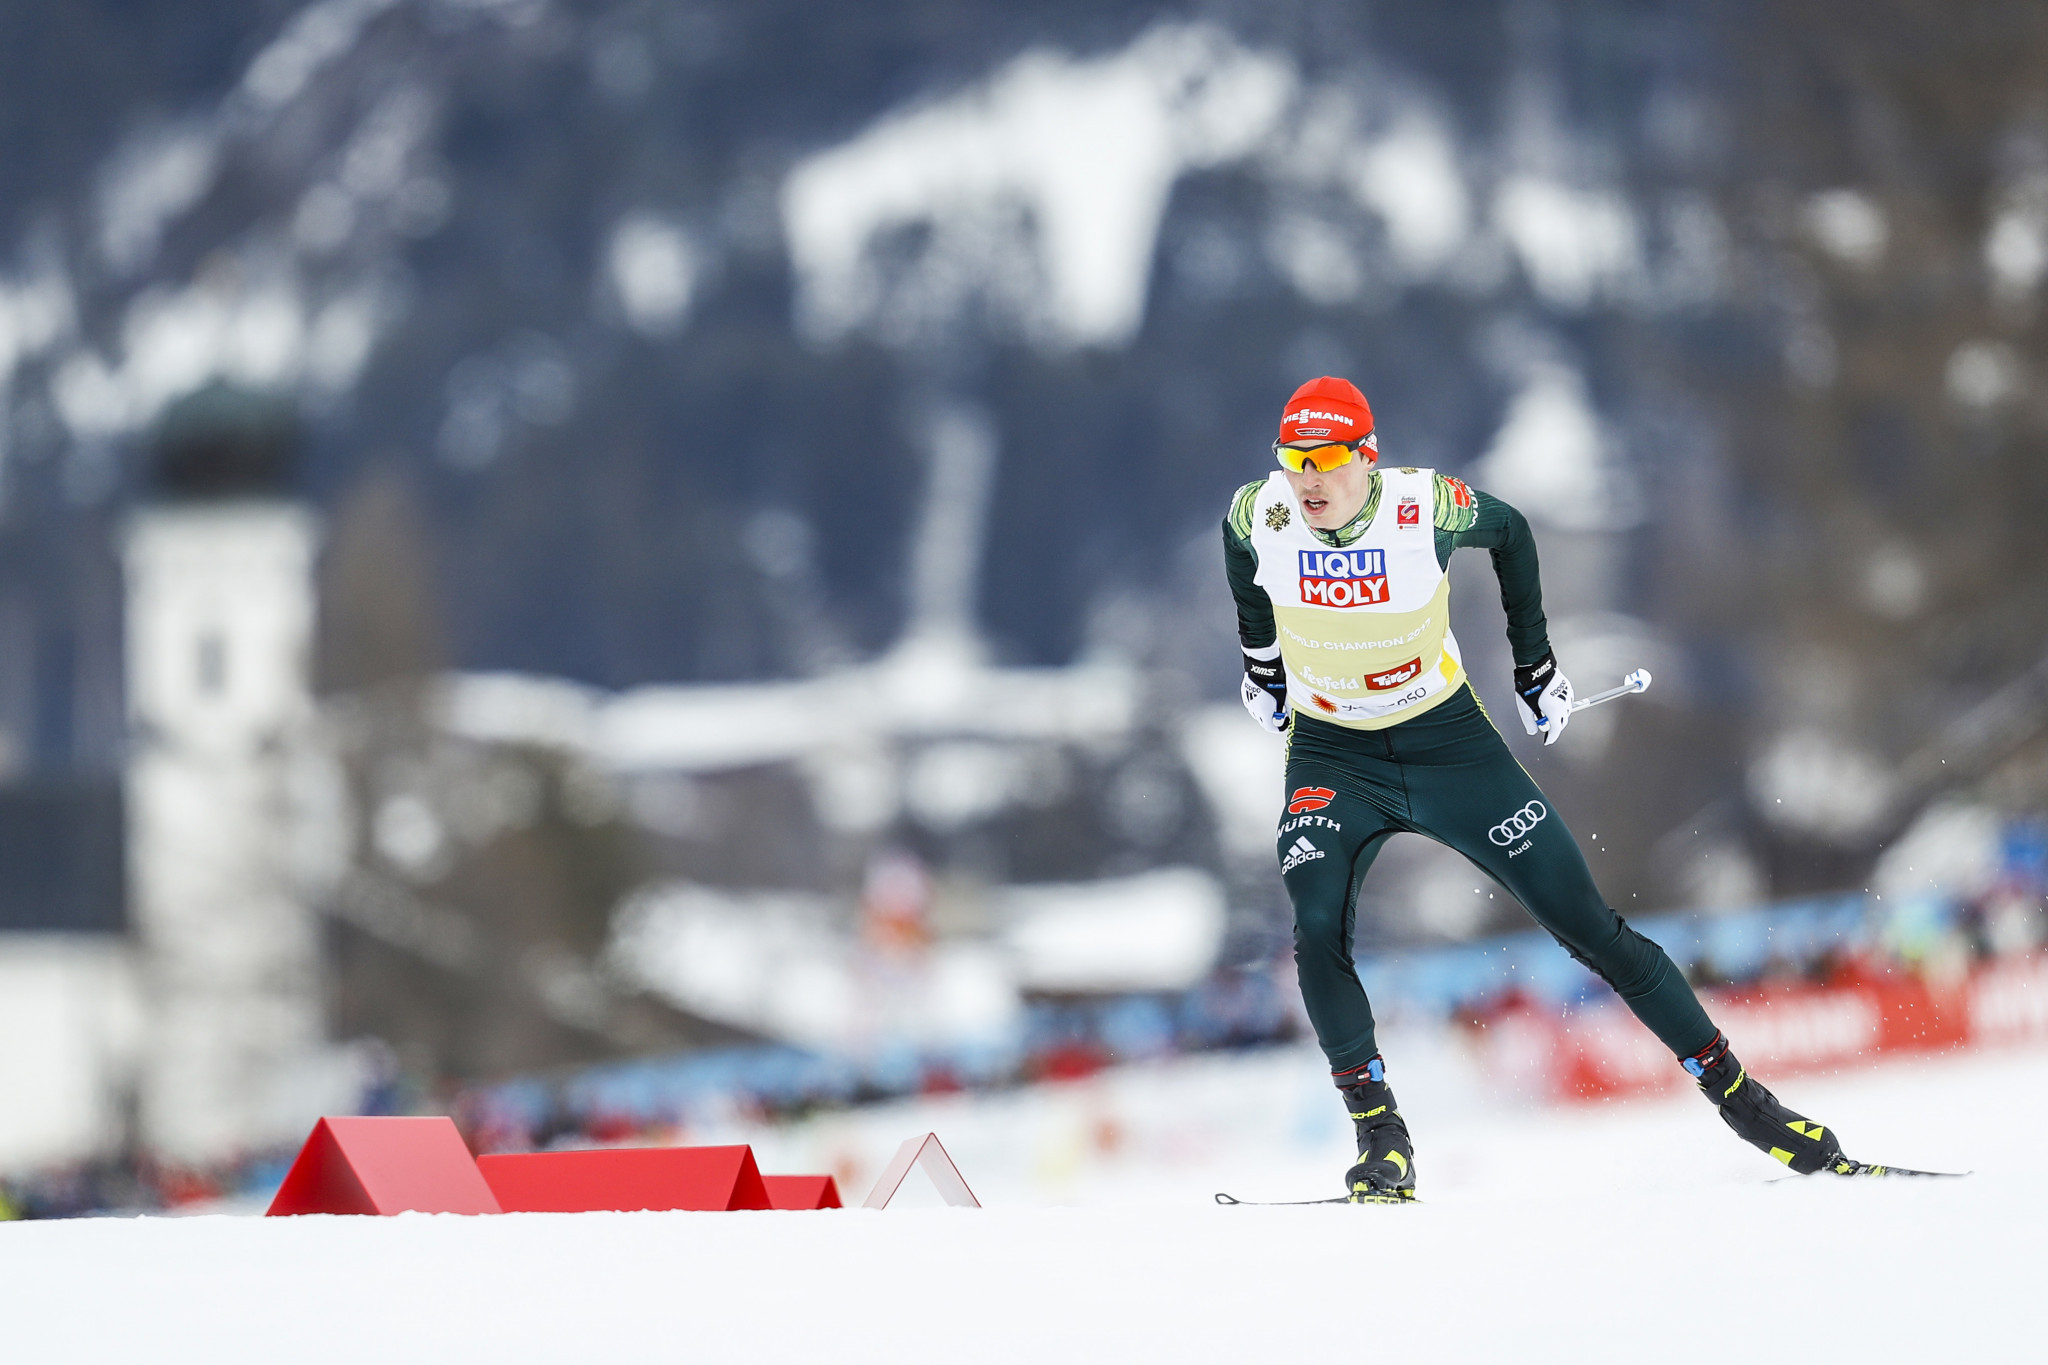 Eric Frenzel looked to add to the Nordic combined large hill title he earned two days ago ©Getty Images